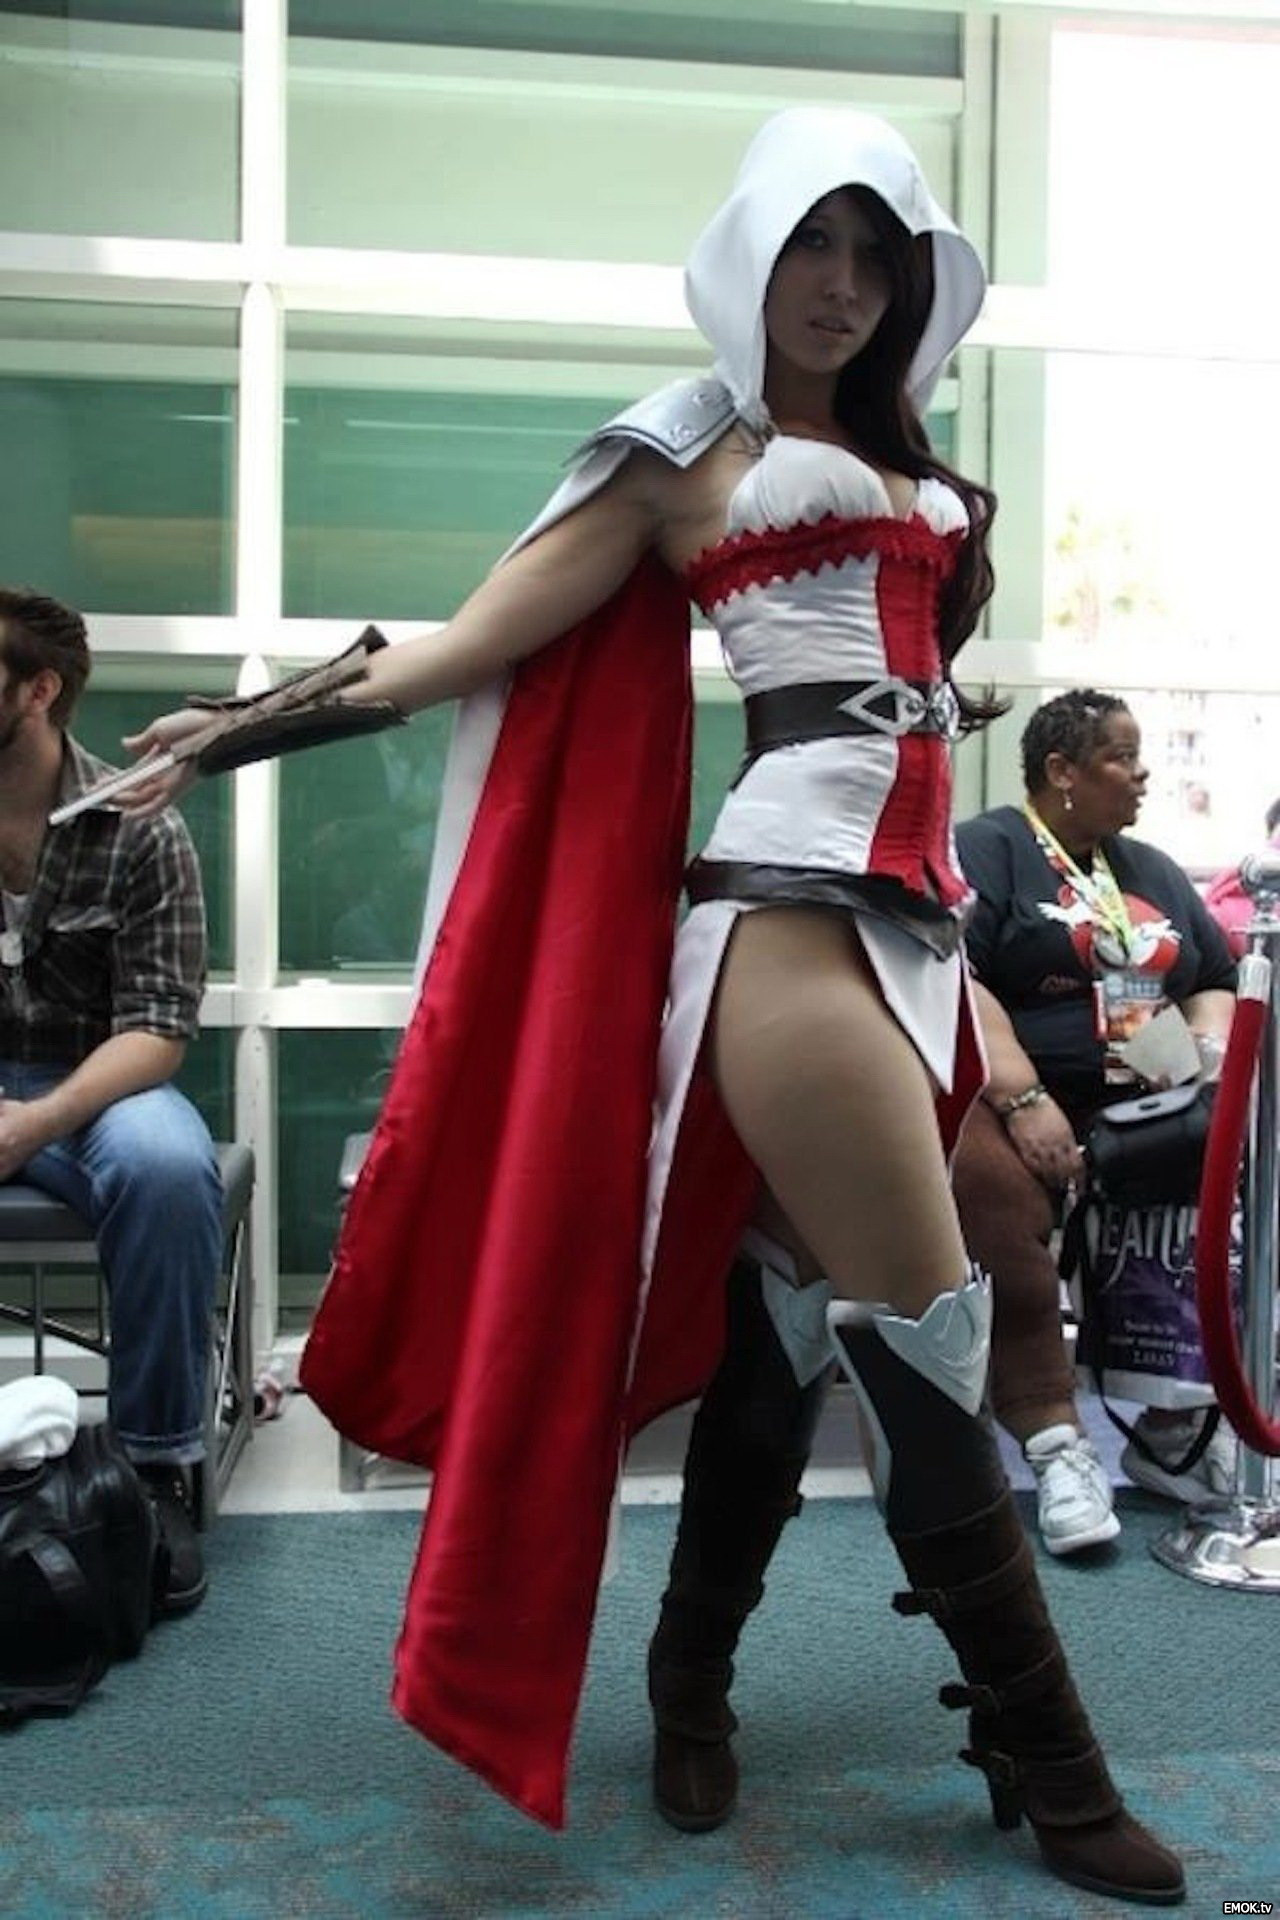 Assassins creed porn cosplay smut pic